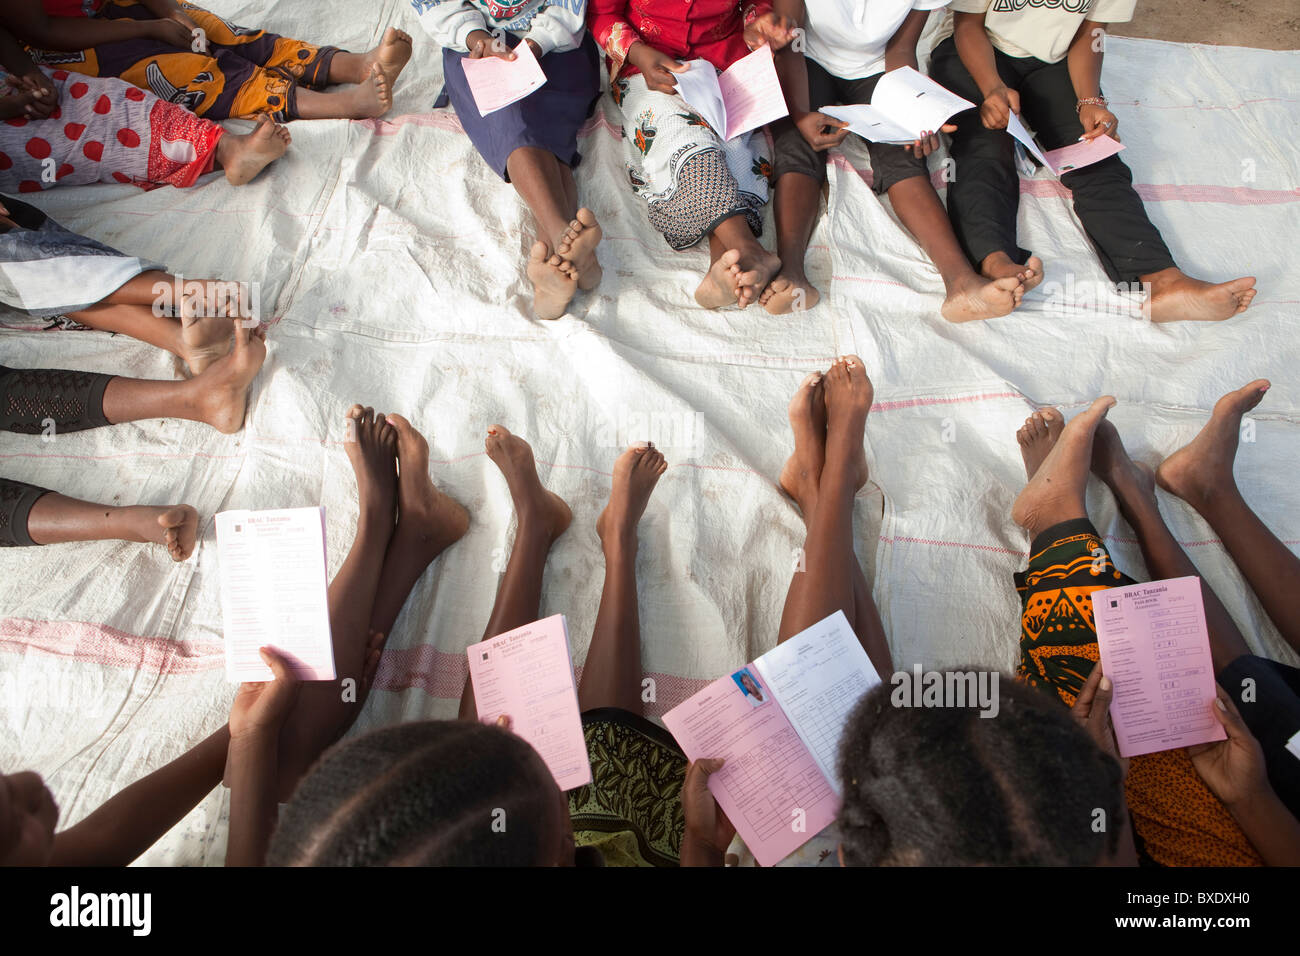 Women attend a community meeting in Dodoma, Tanzania, East Africa. - Stock Image